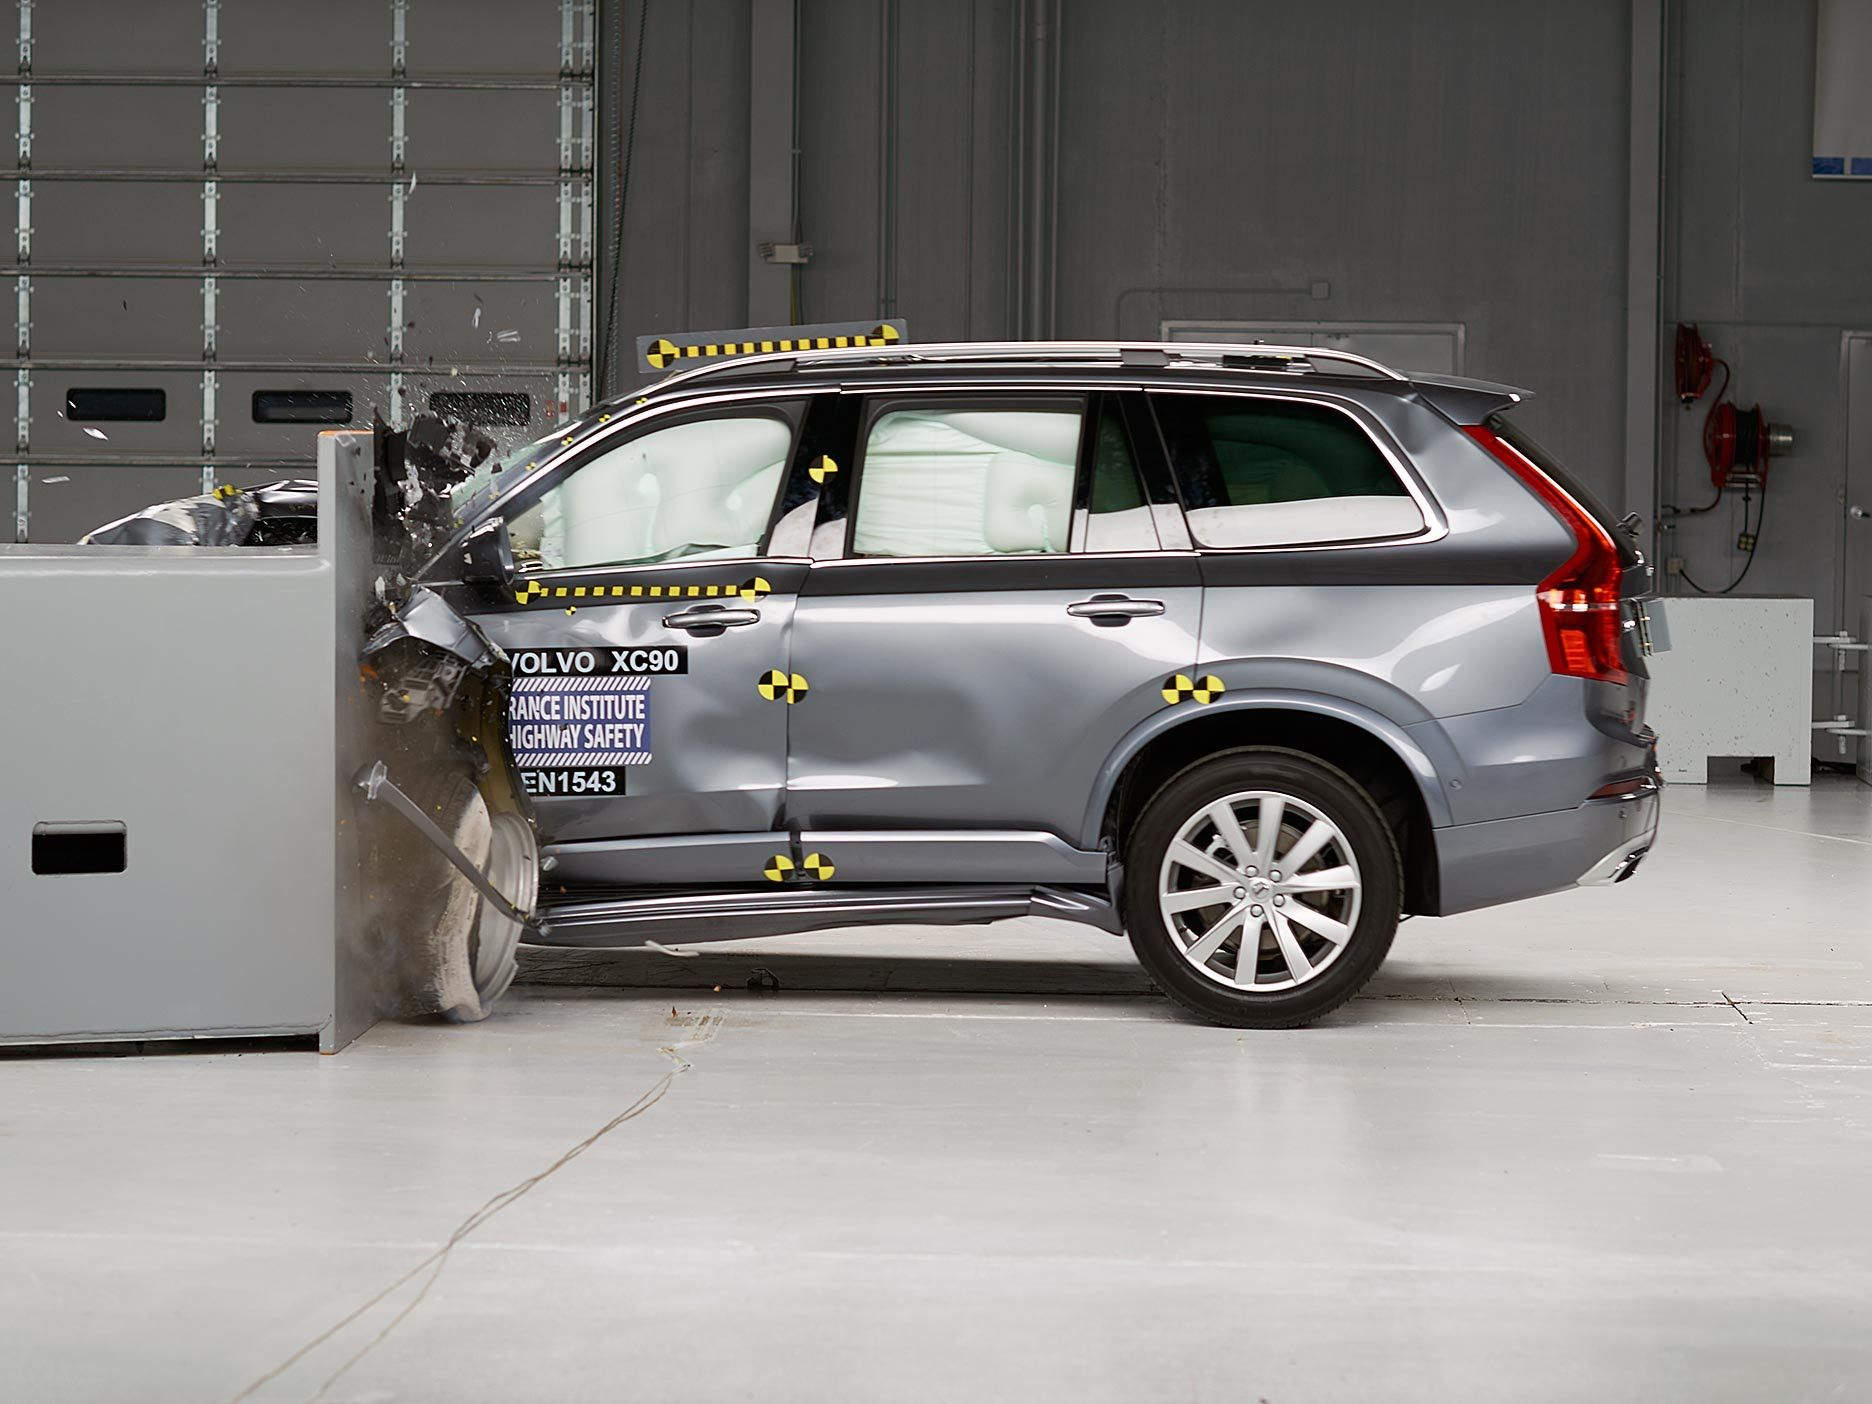 Collision avoidance tech earns volvo s an iihs top safety pick rating